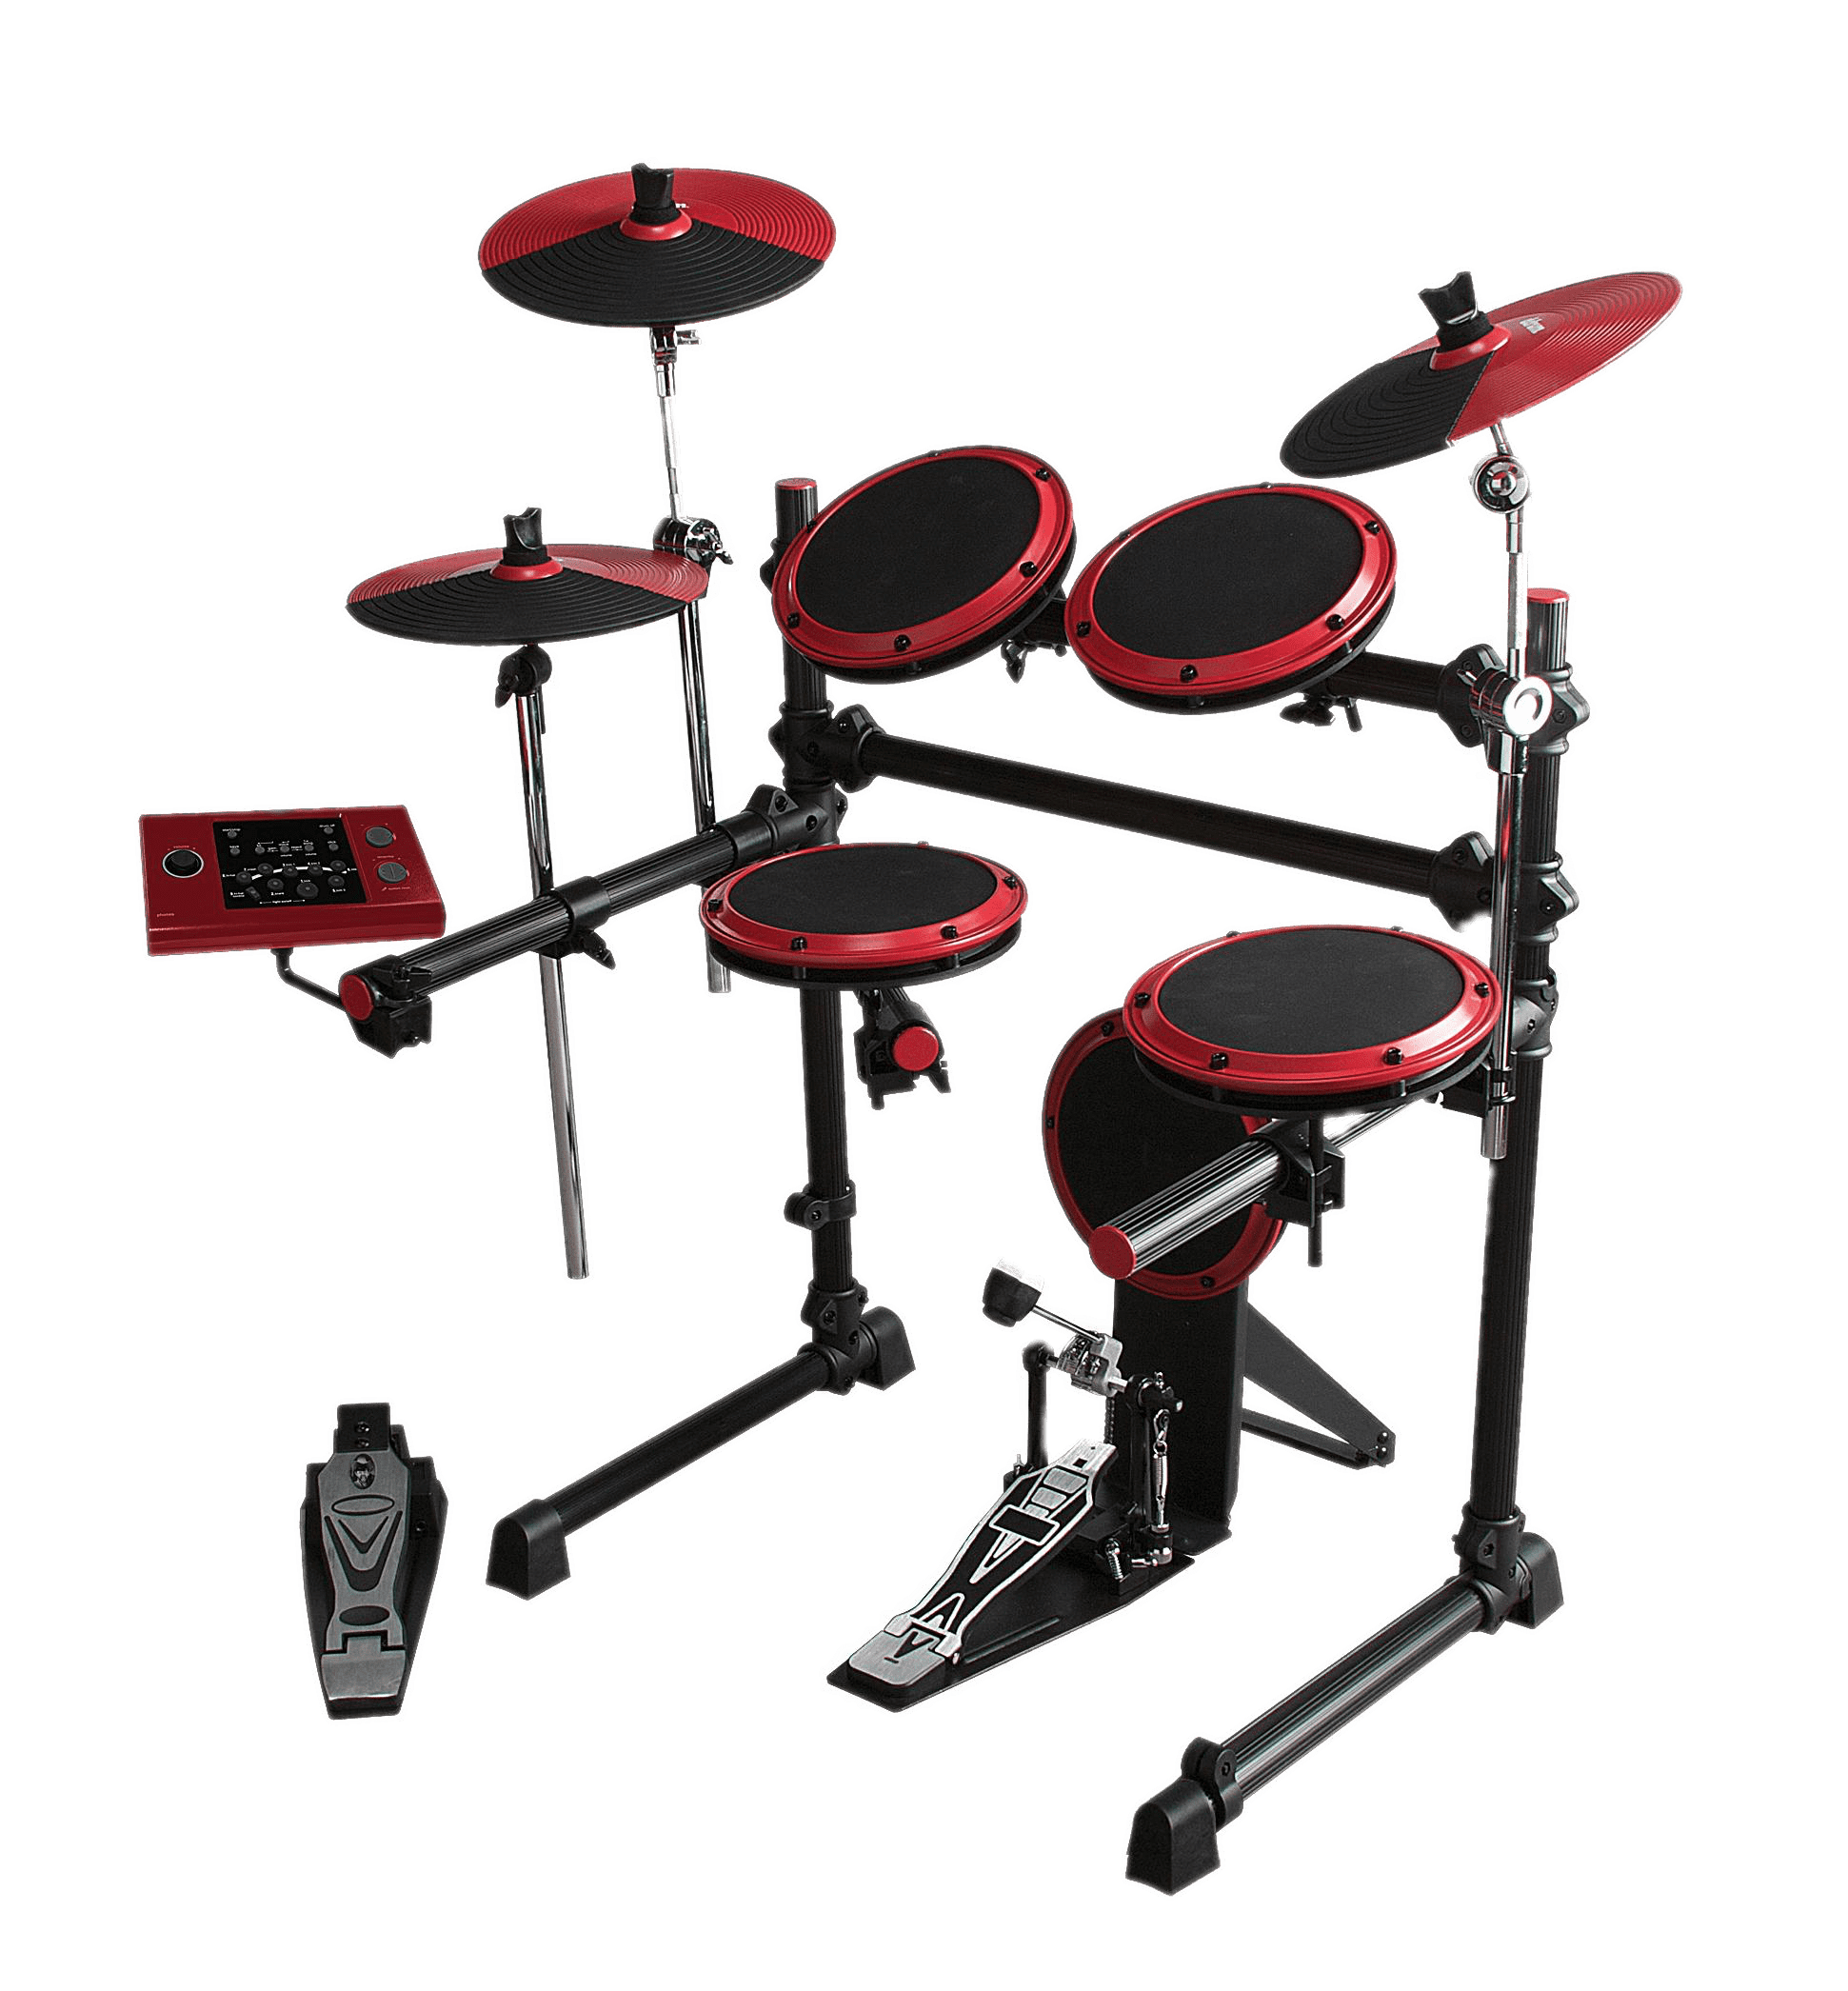 Xylophone clipart percussion instrument. Electronic drum transparent png